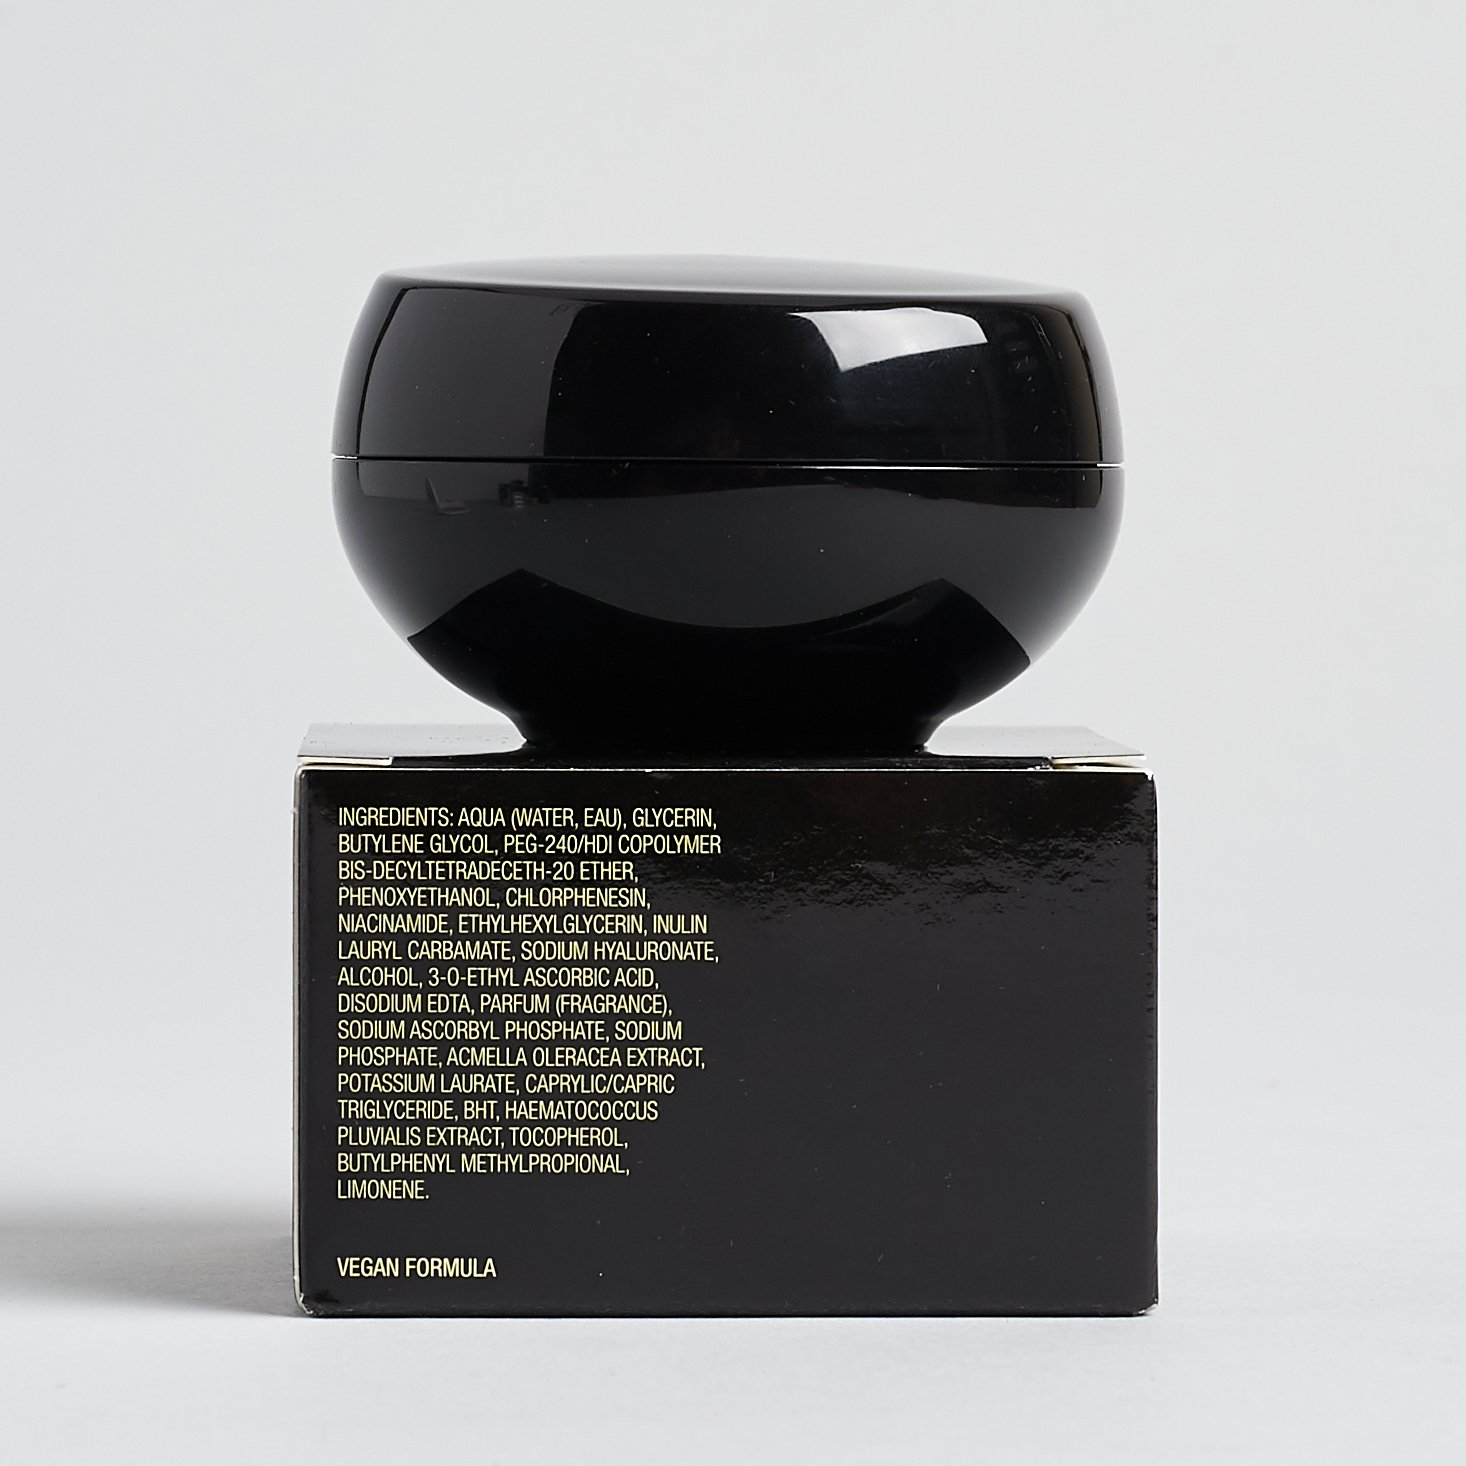 back of packaging with more info and text